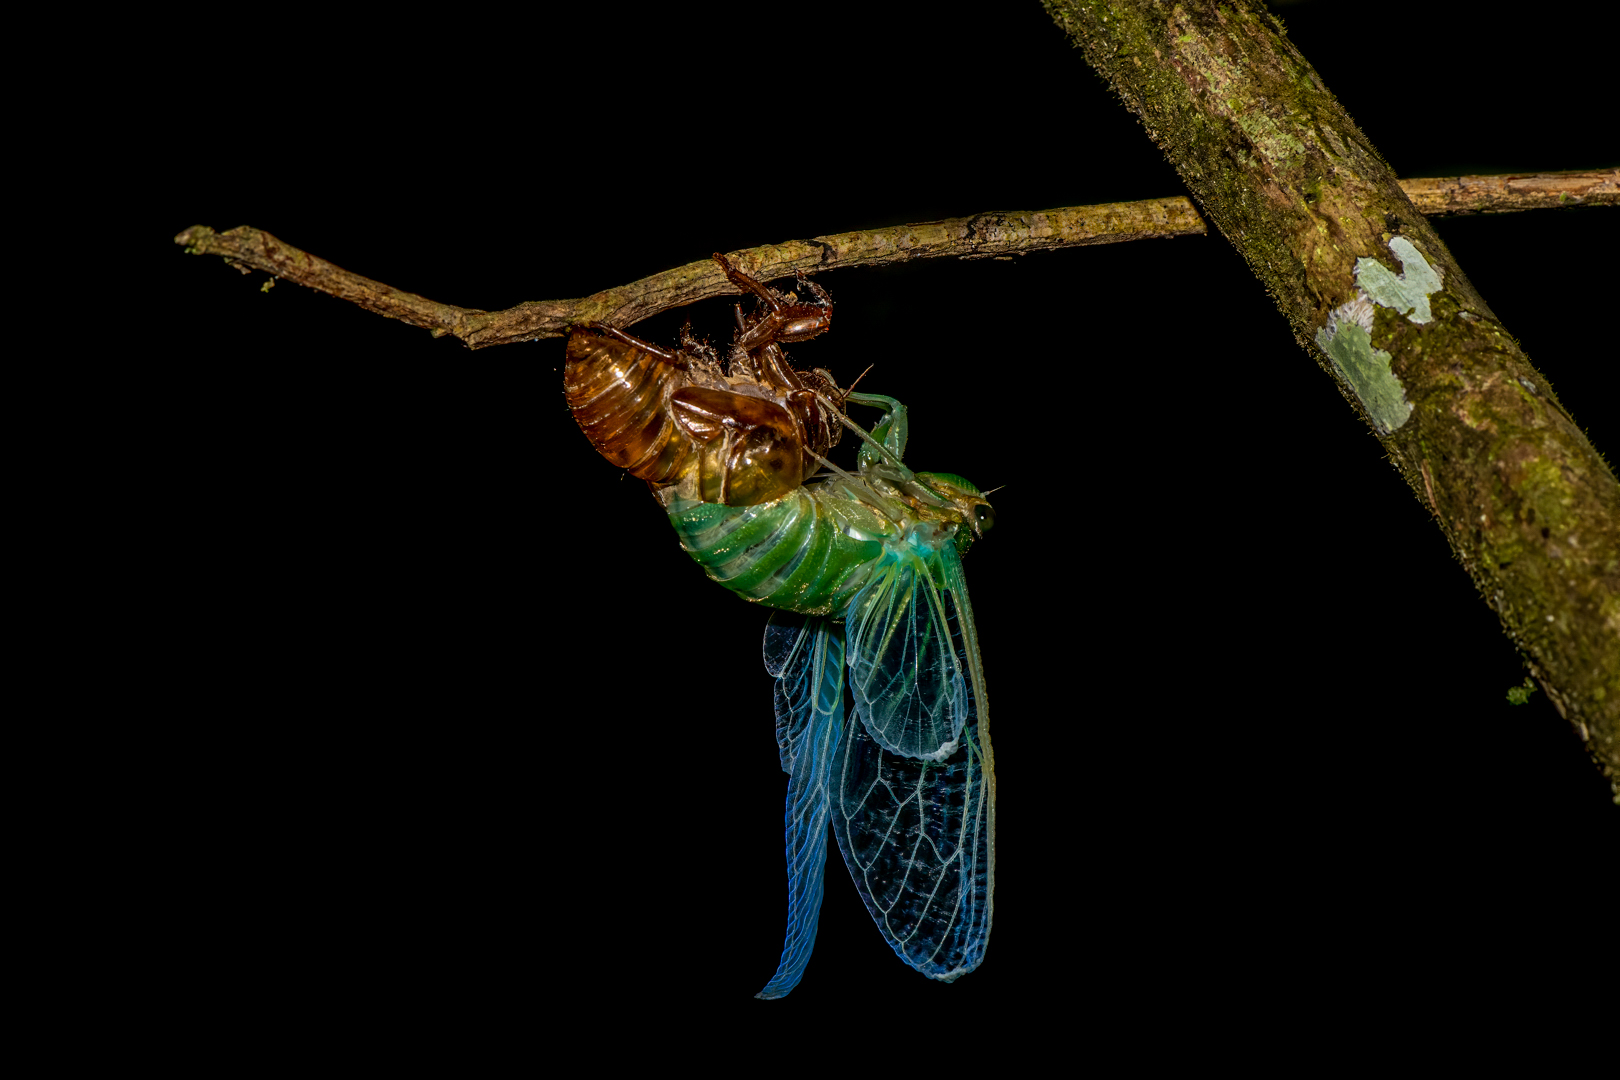 Vincent Filteau – Cicada emerging from chrysalis – 2ND